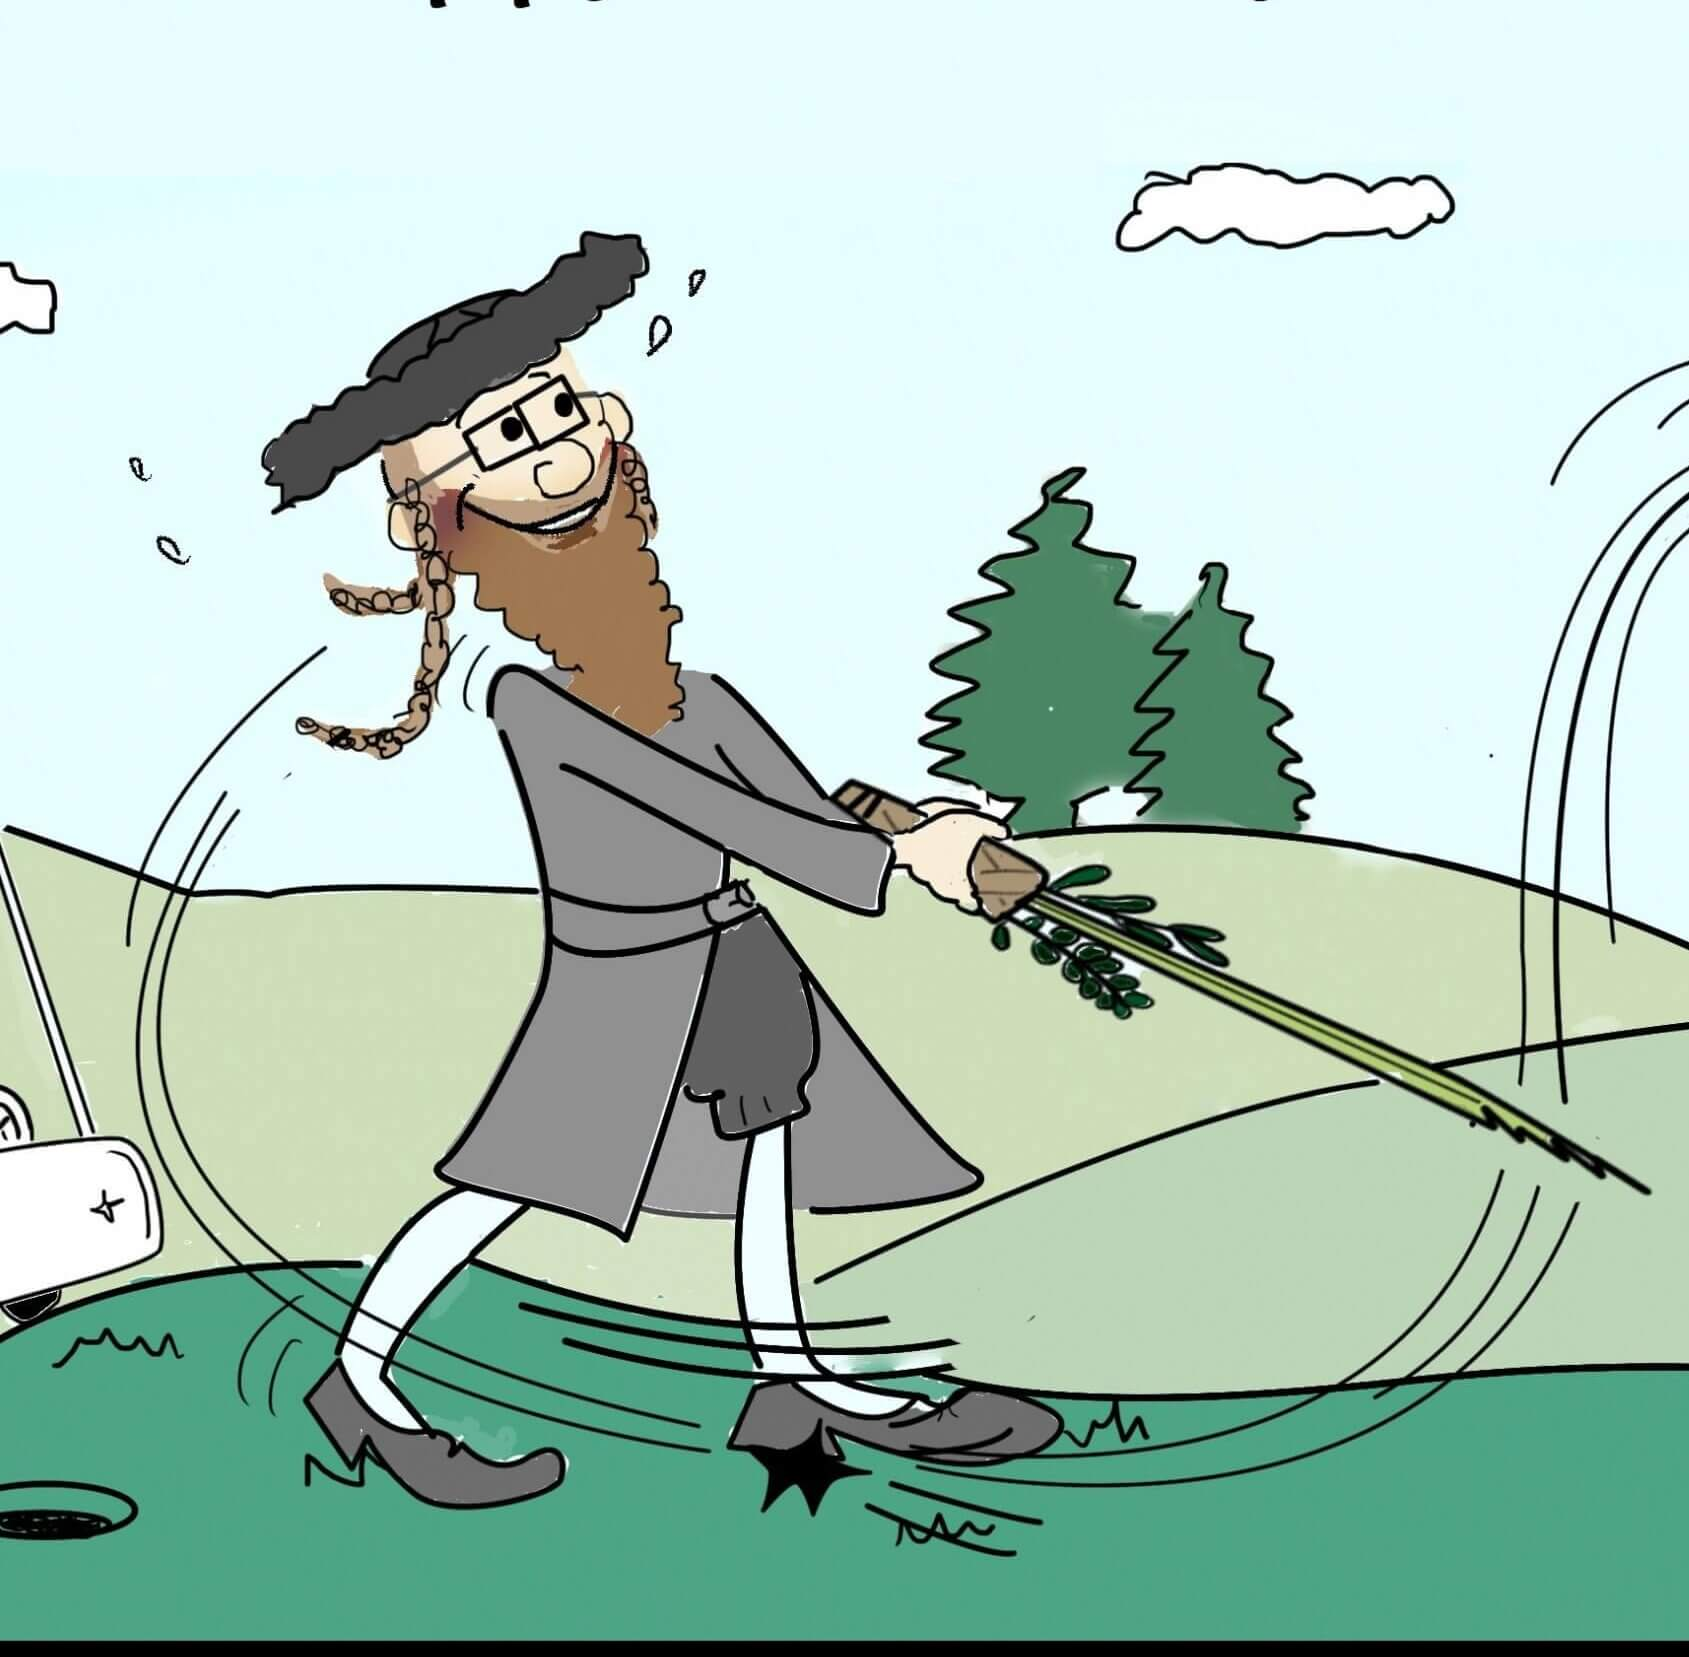 A guy playing golf with Lulav and Esrog